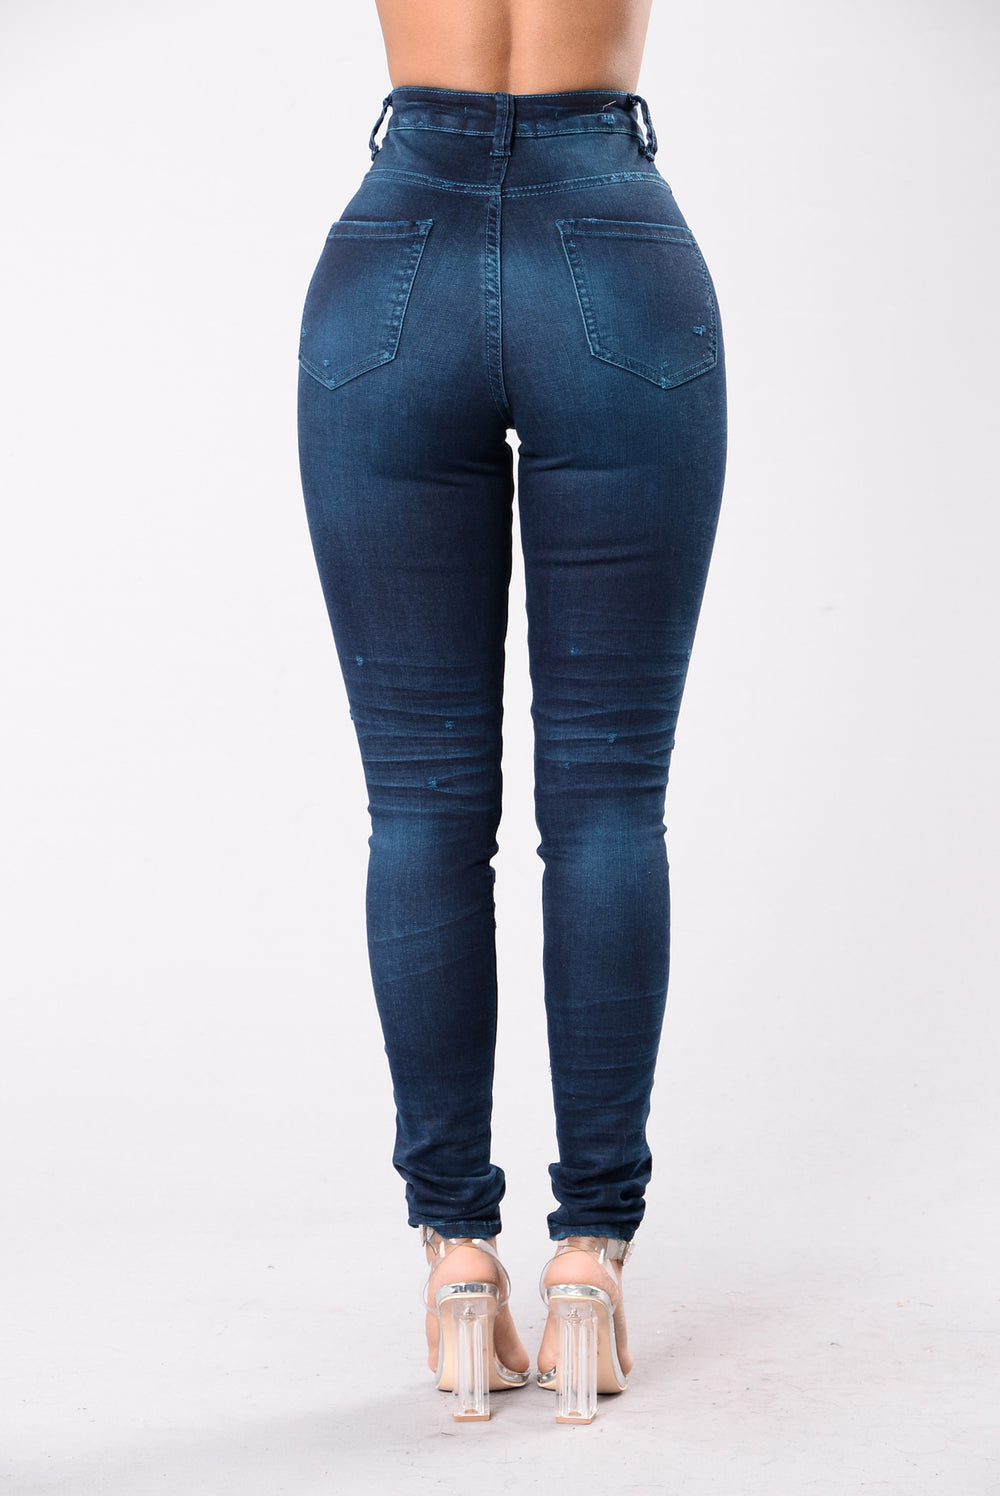 Back In The Day Jeans - Blue